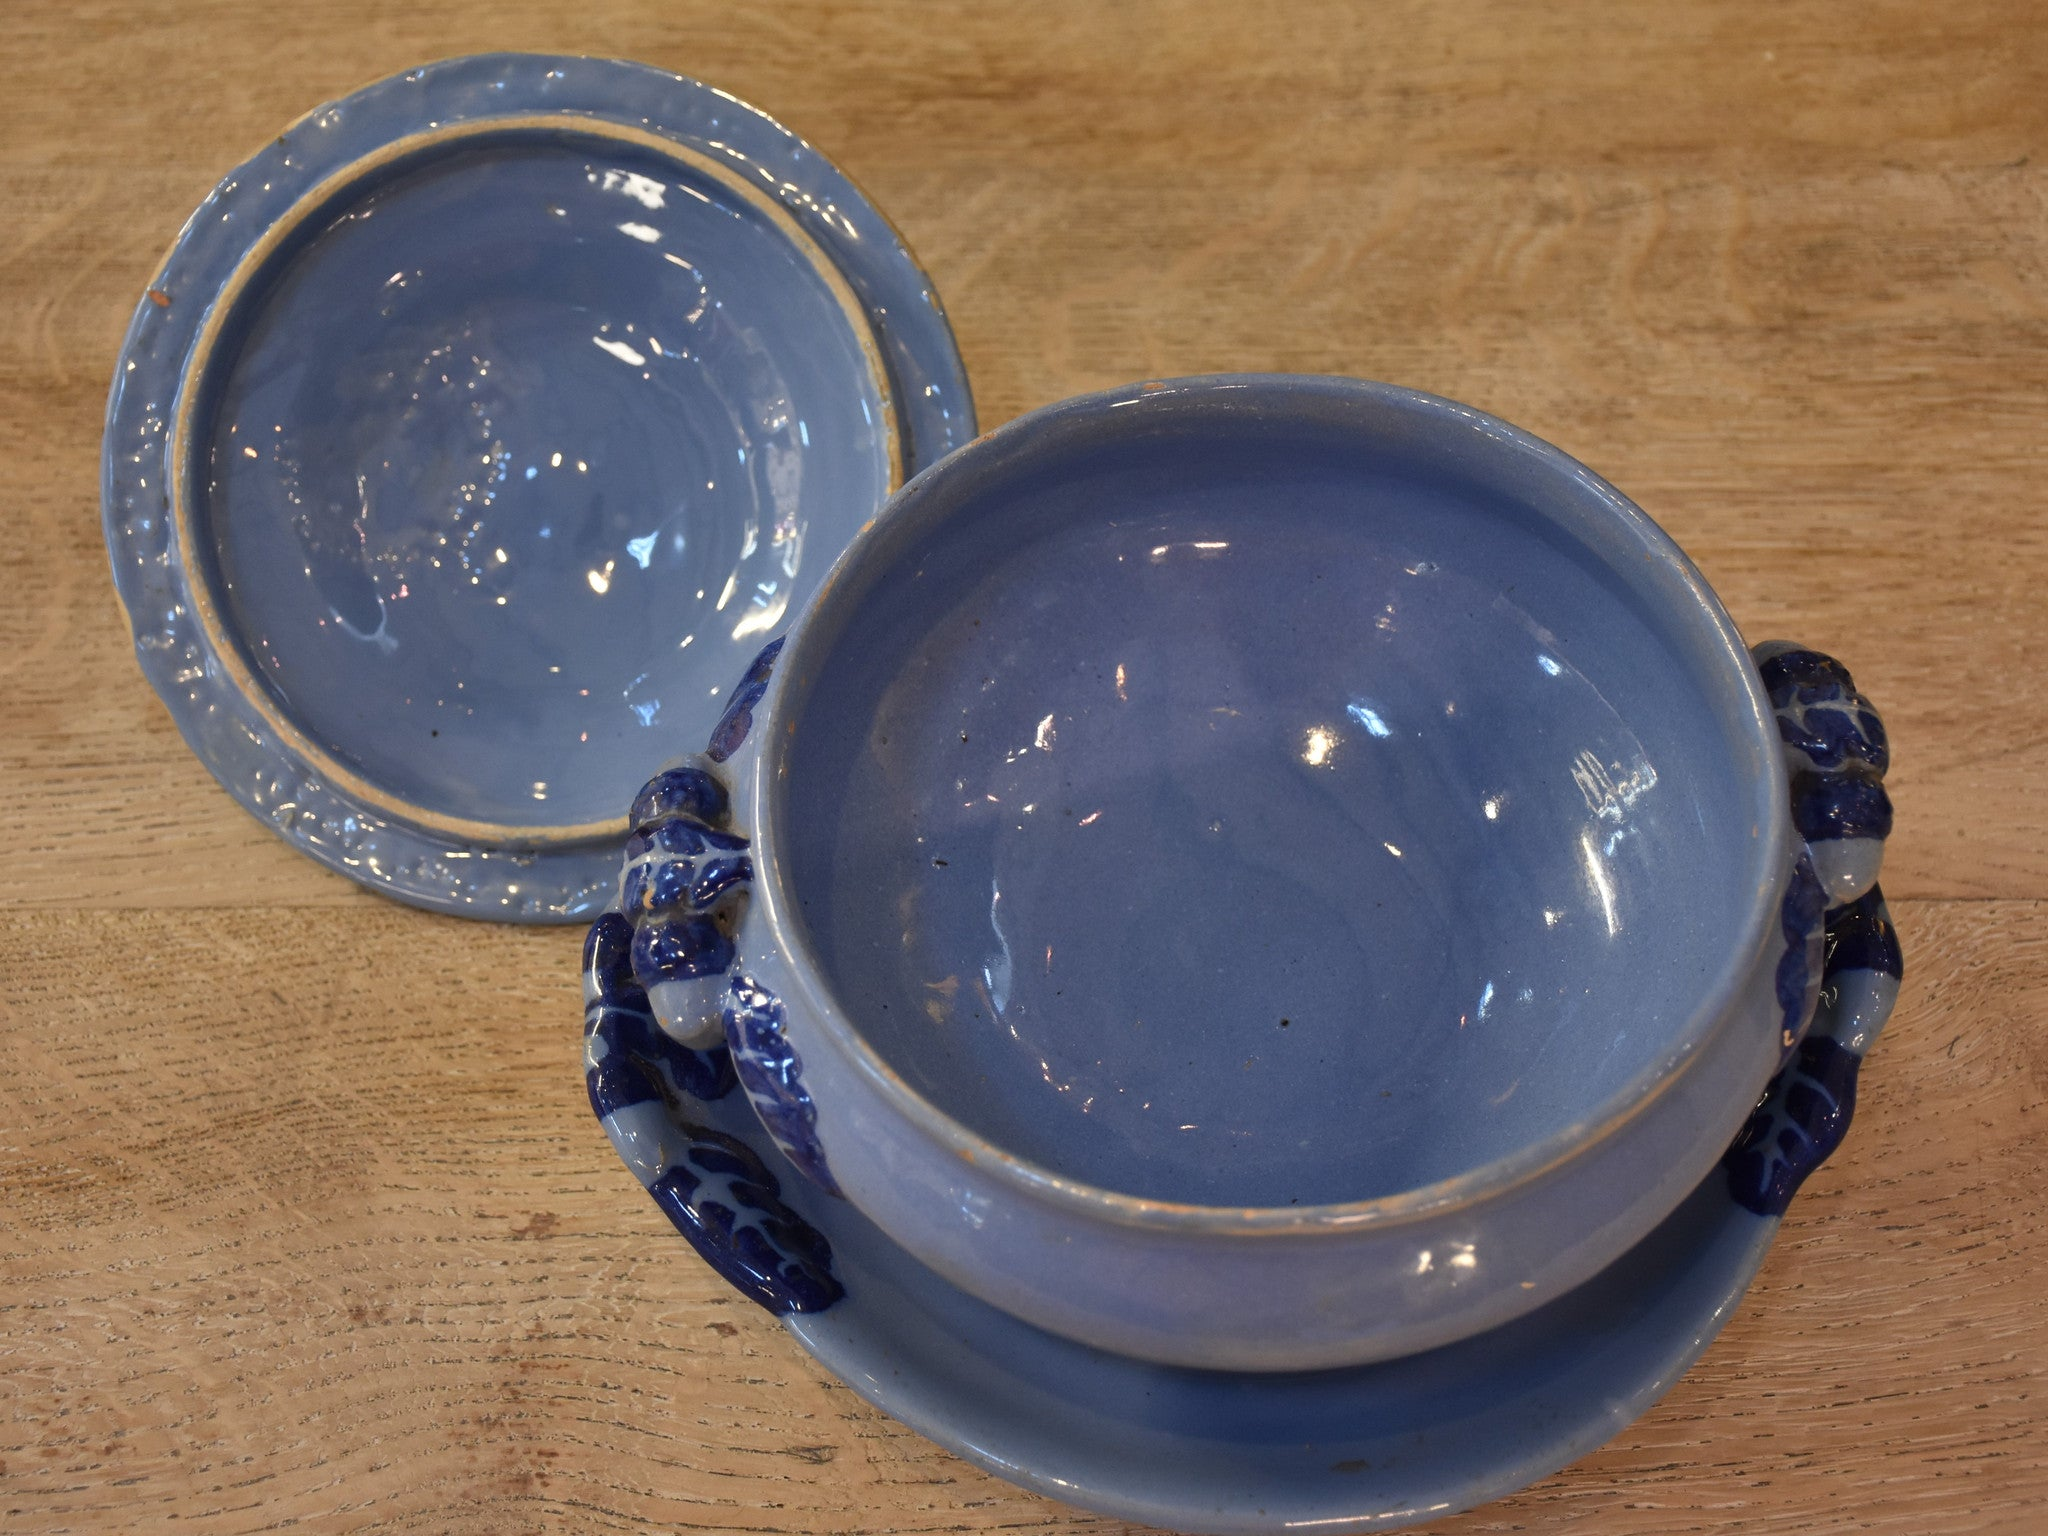 19th century Charolles blue soup tureen from Burgundy